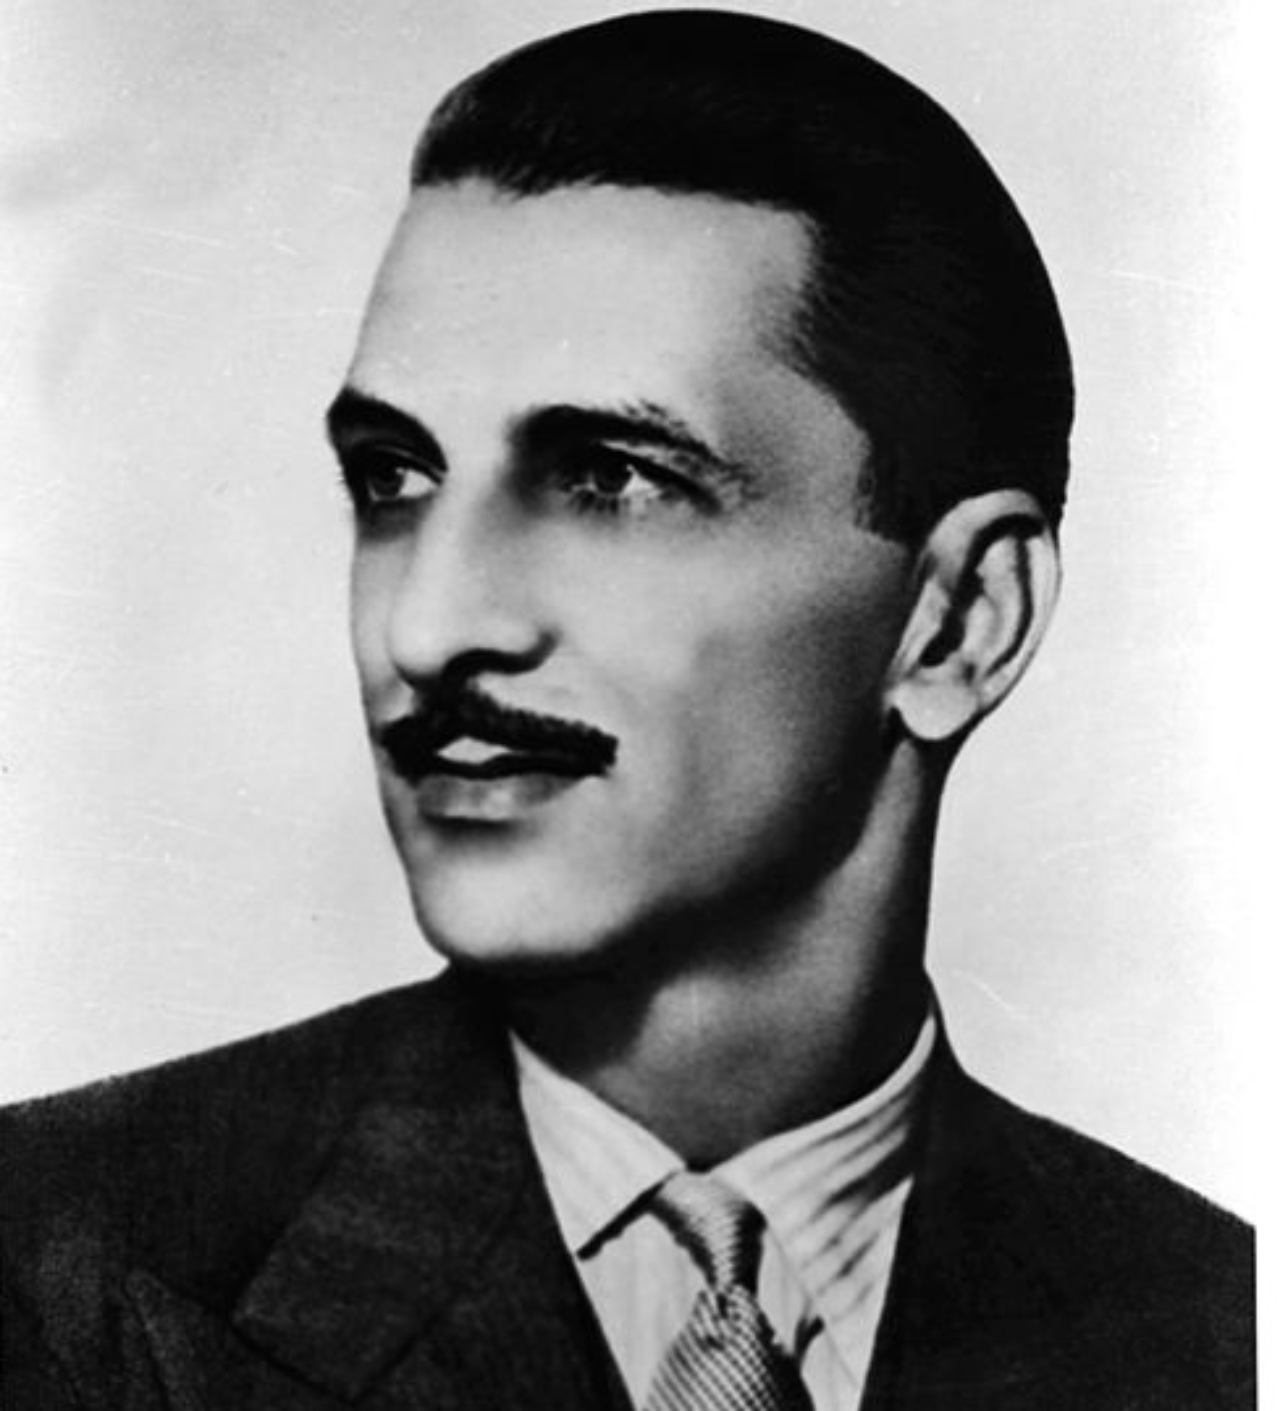 Jehangir Ratanji Dadabhoy Tata, popularly known as JRD Tata, was the visionary entrepreneur who is widely credited for ushering in an era of rapid industrialisation in the country at a time when it was emerging from the yoke of colonialism. He laid the foundation to multiple companies, and consolidated the preeminent standing of one of India's foremost industrial groups. At the helm of the Tata Group for nearly five decades, JRD expanded the organisation from the 14 firms he inherited, to building an empire comprising of 95 companies by the time he retired in 1988. On his 25th death anniversary, let's look back at his legacy. (Image: Wikipedia)